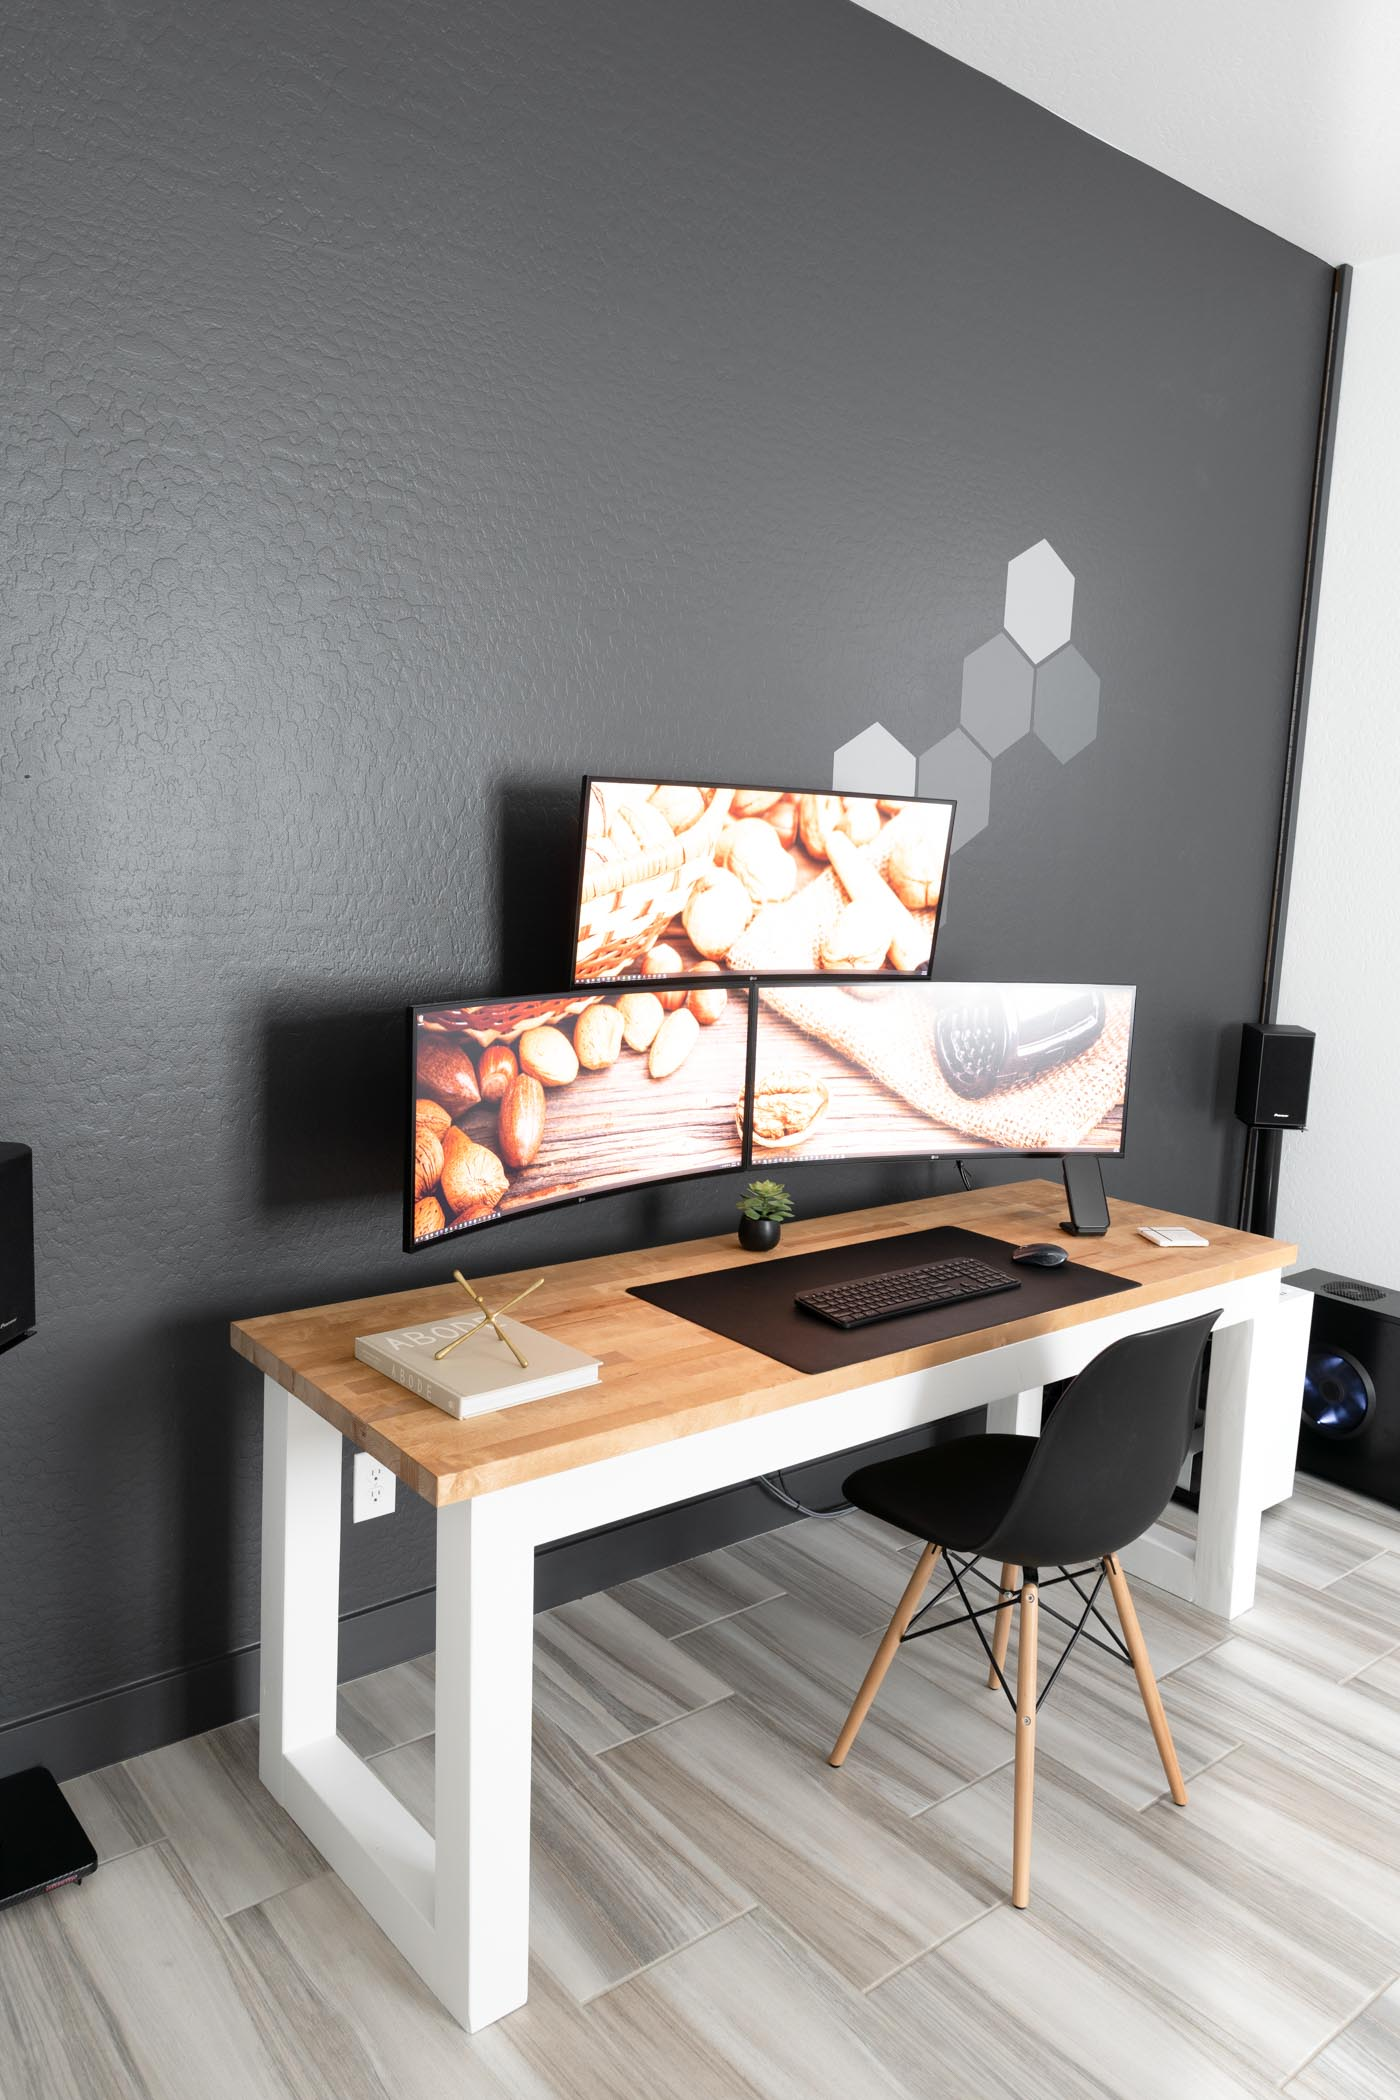 wooden desk with black chair and computer monitors